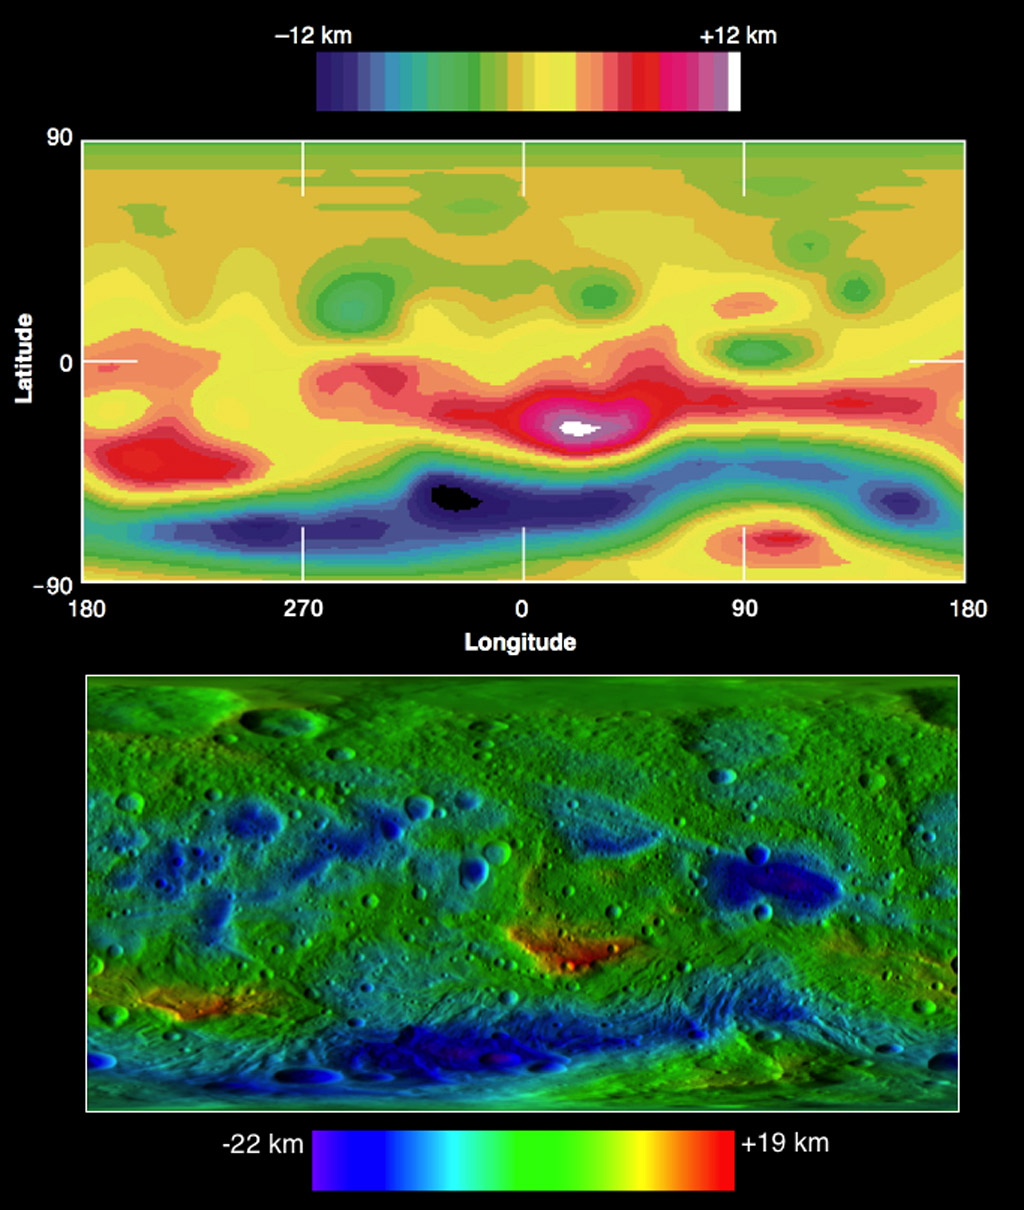 These two images compare topographic maps of the giant asteroid Vesta as discerned by NASA's Hubble Space Telescope (top) and as seen by NASA's Dawn spacecraft (bottom). Hubble has been in an orbit around Earth, while Dawn orbited Vesta from 2011 to 2012.